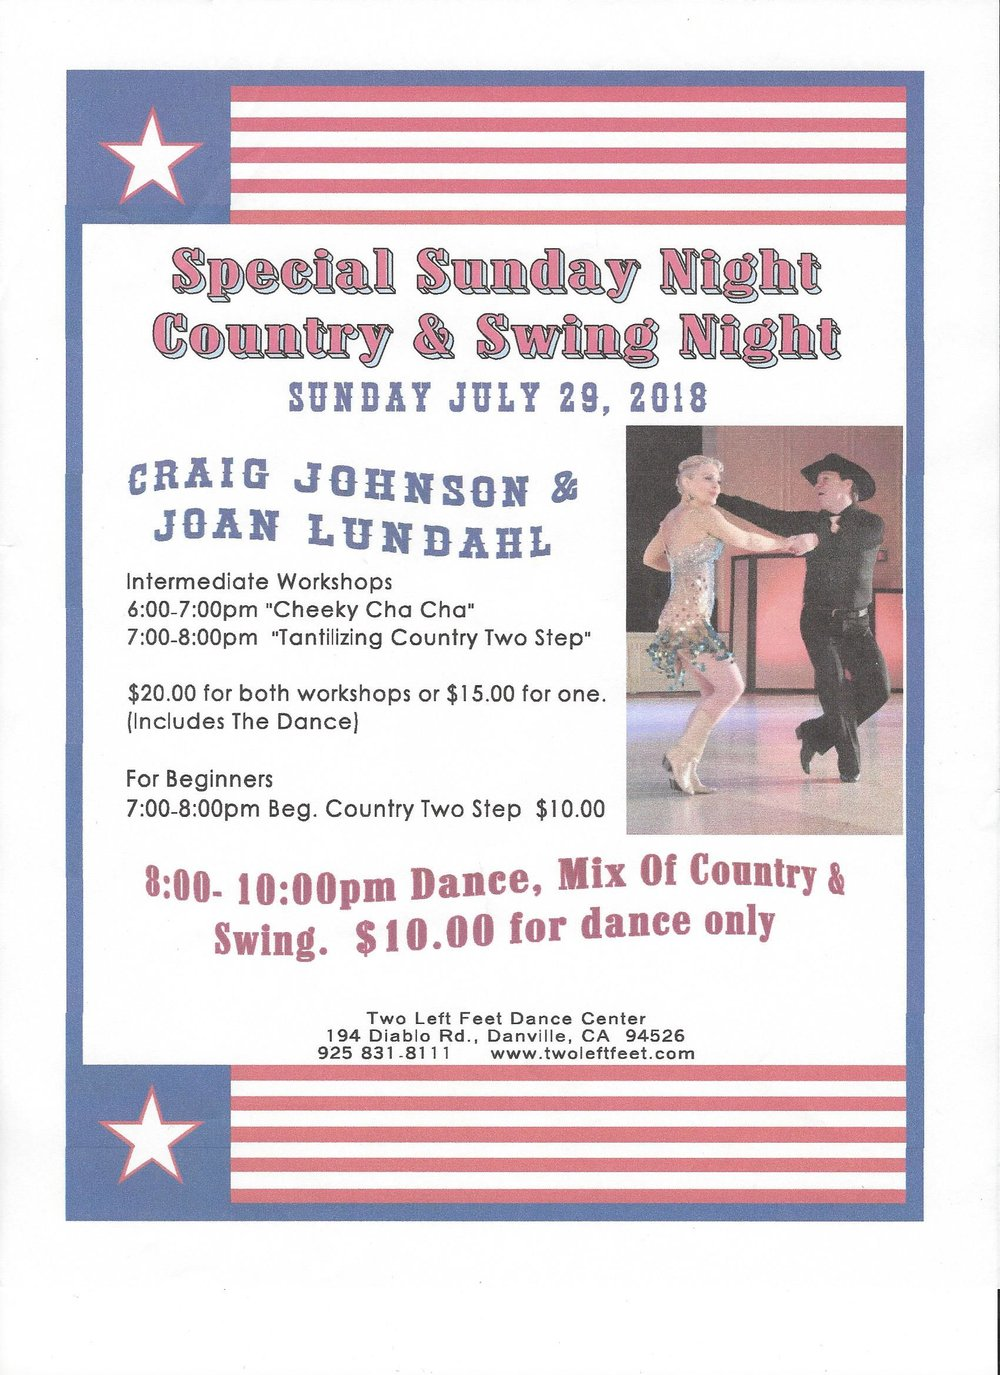 2018-07-29 Sunday Country & Swing night.jpg